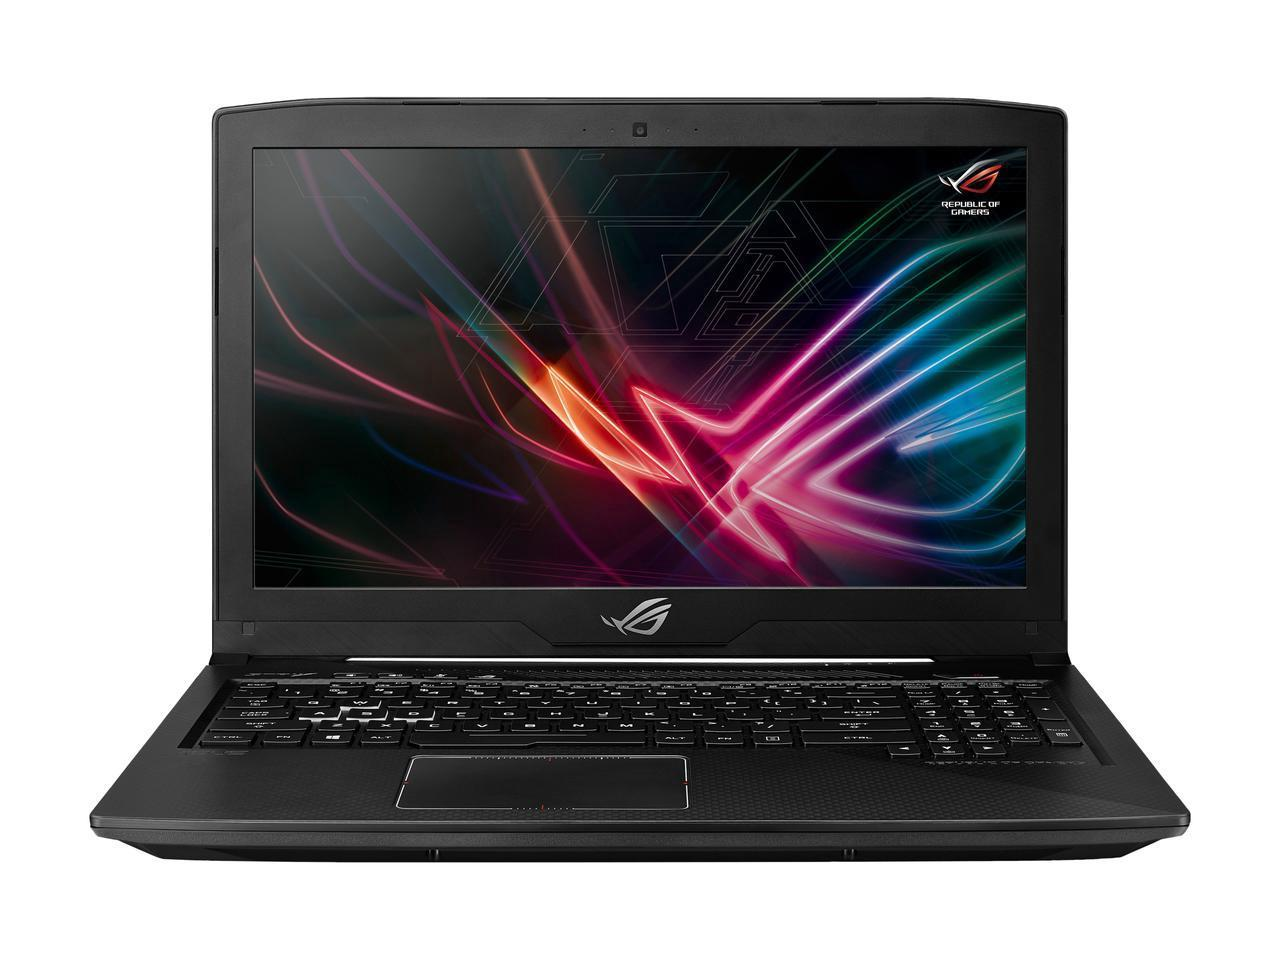 "Asus 15.6"" Gaming Laptop (i7-7700HQ / 8GB / 1TB HDD & 128GB SSD) Bundle"